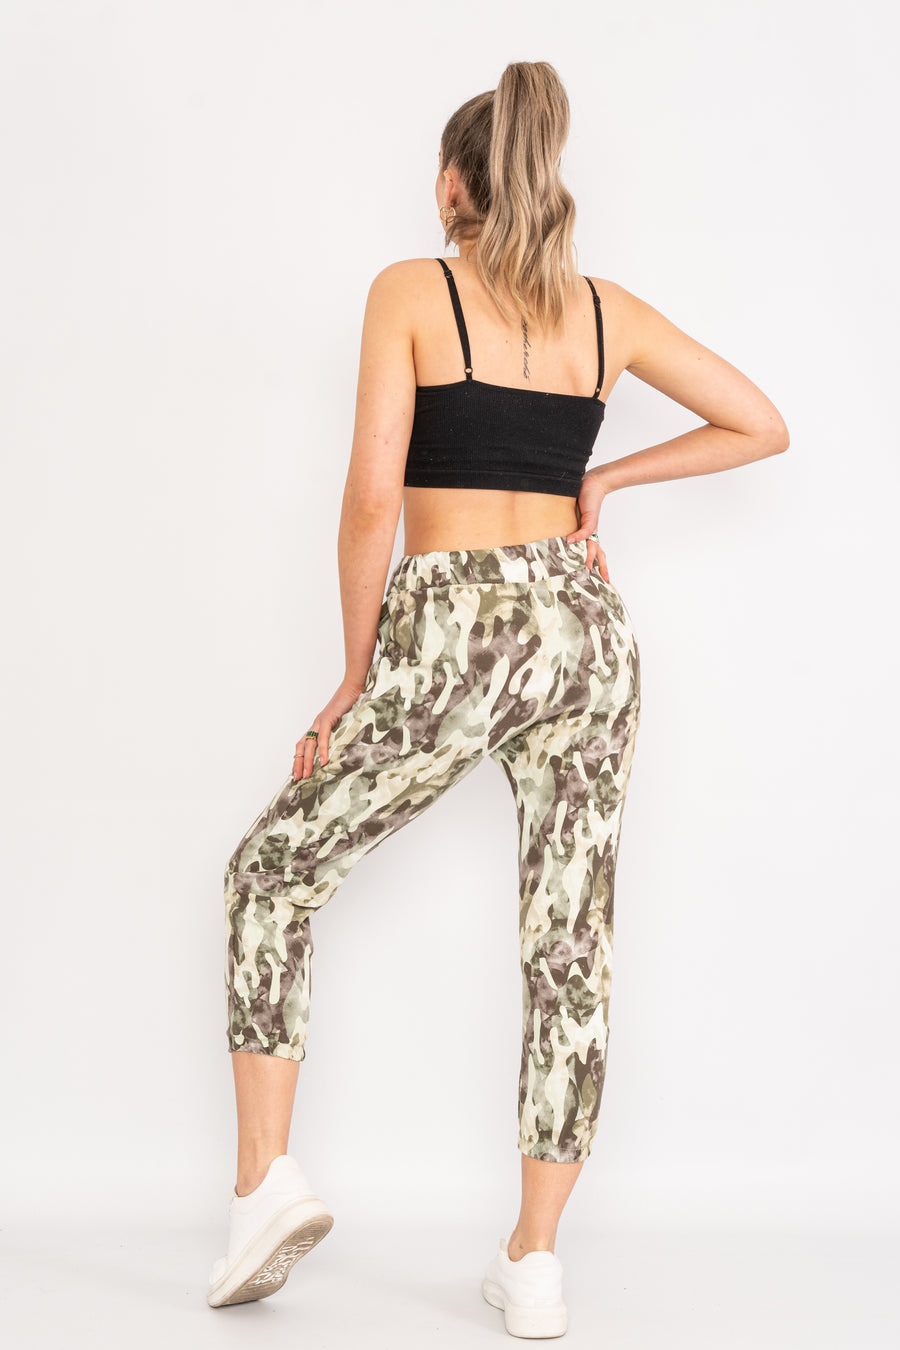 Drawstring camouflage bottoms.